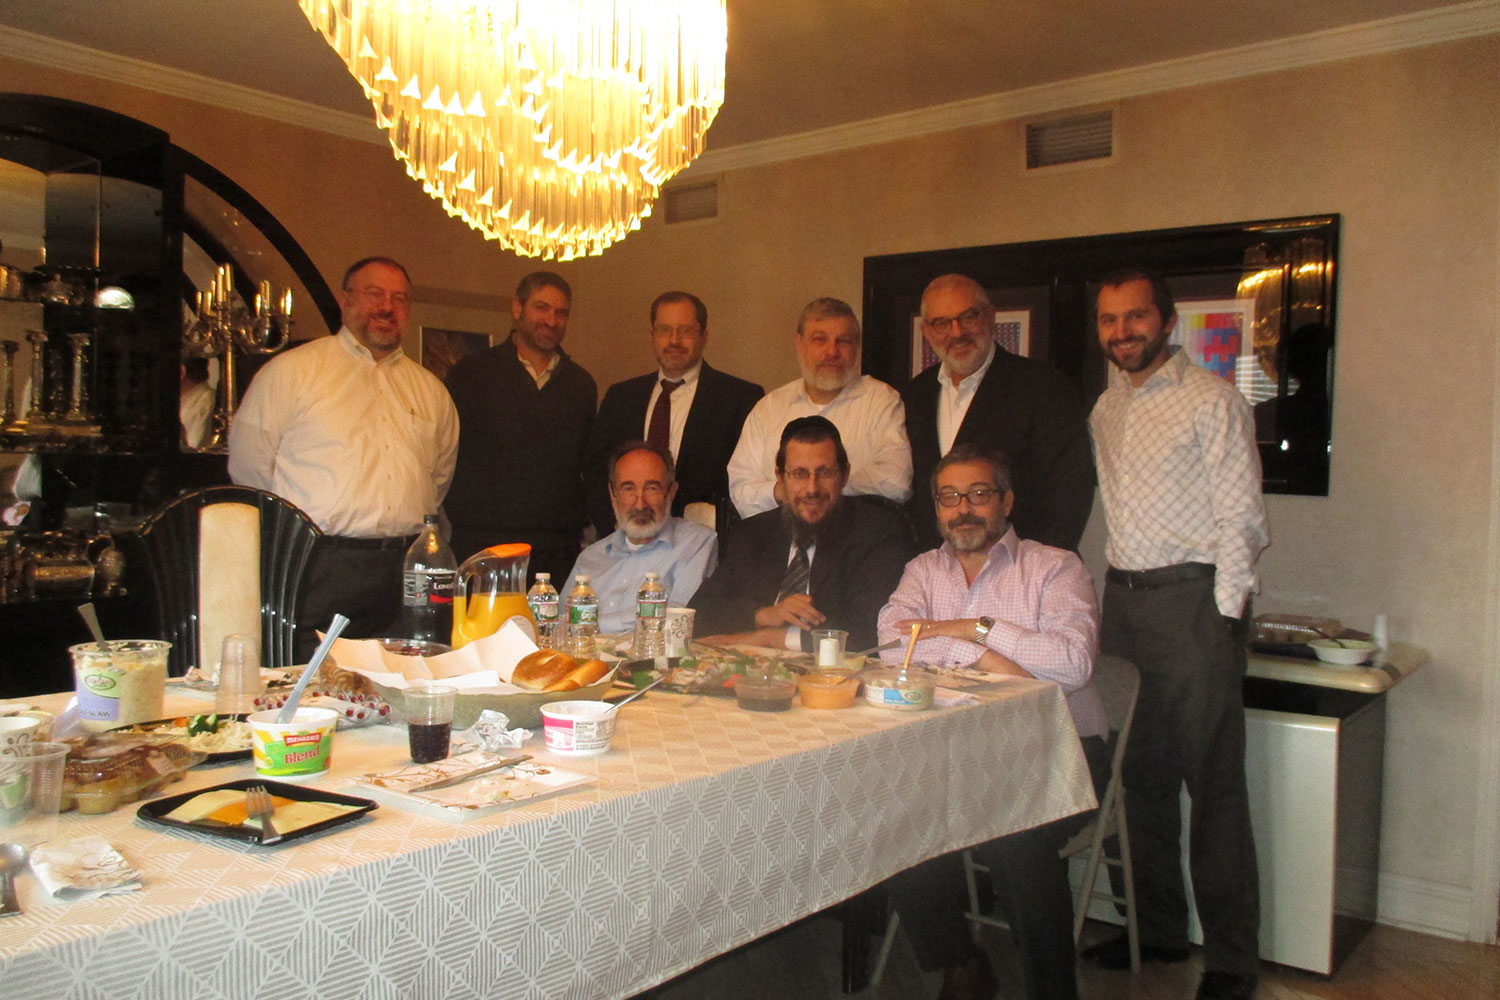 Shiur and brunch in East Brunswick